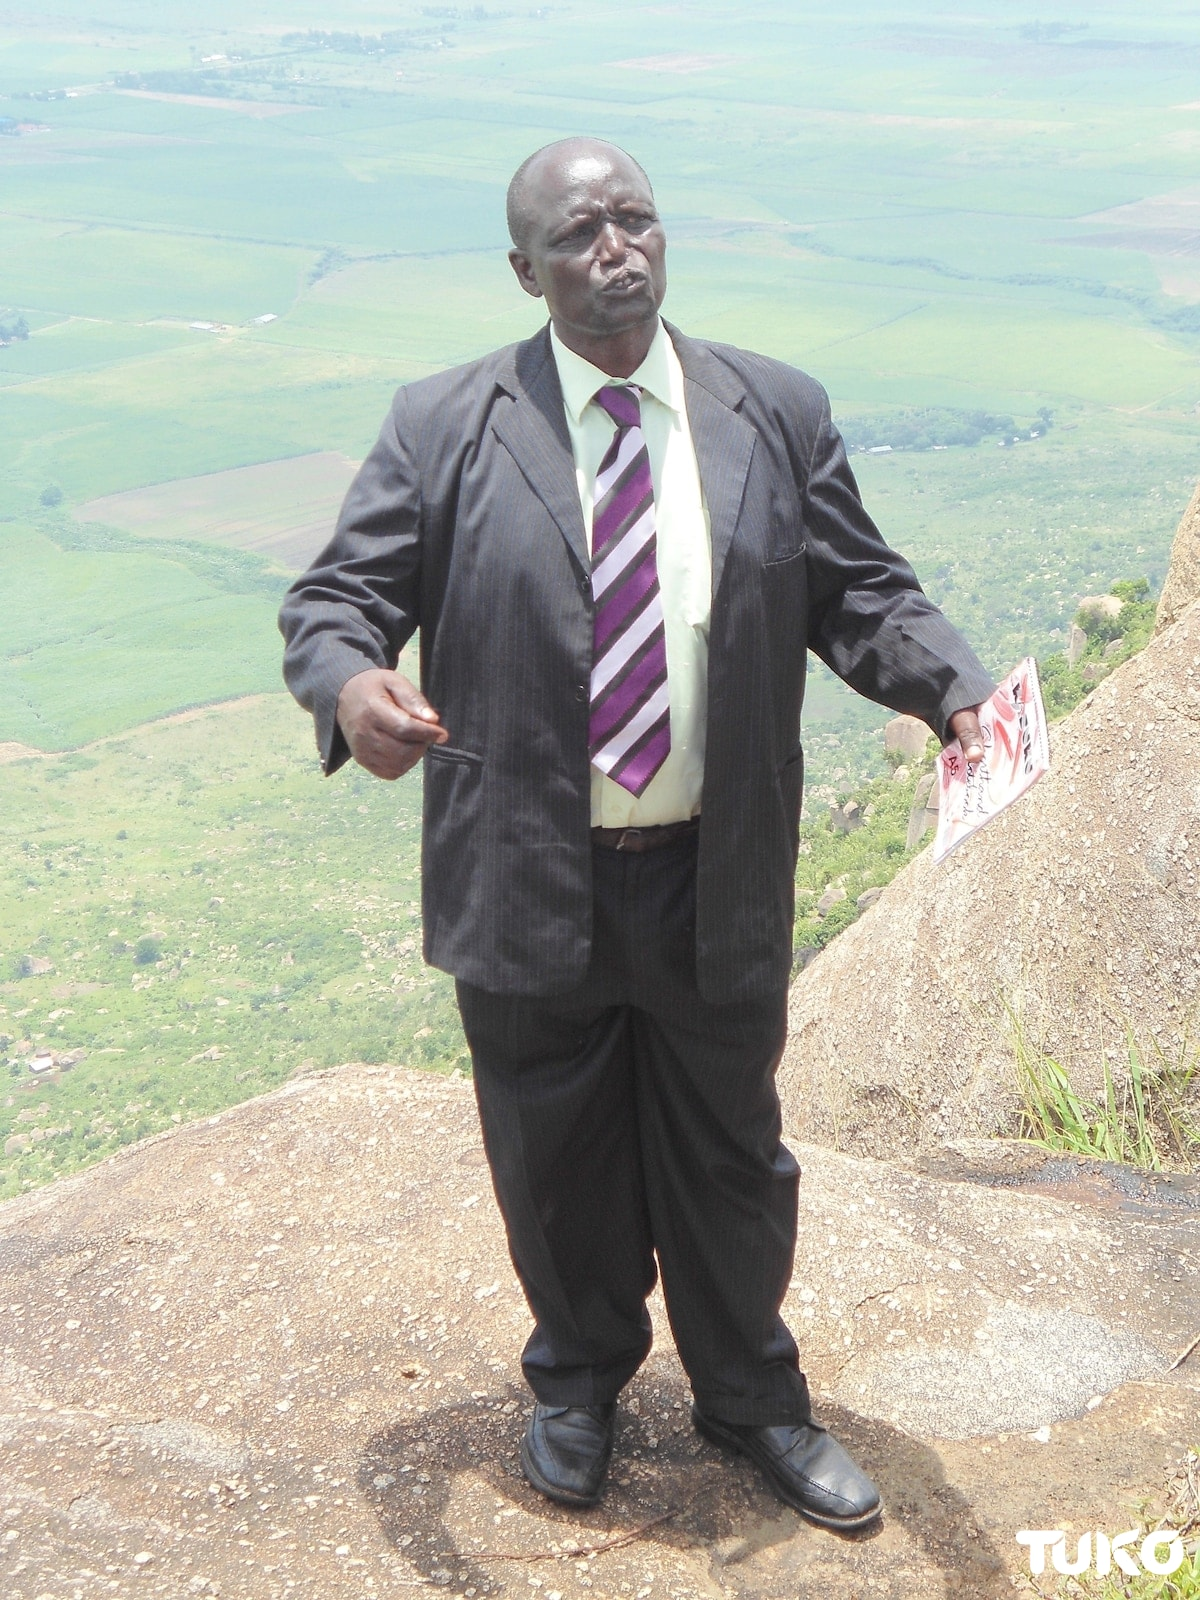 The sacred Nandi county cliff where the aged willingly jump to their death